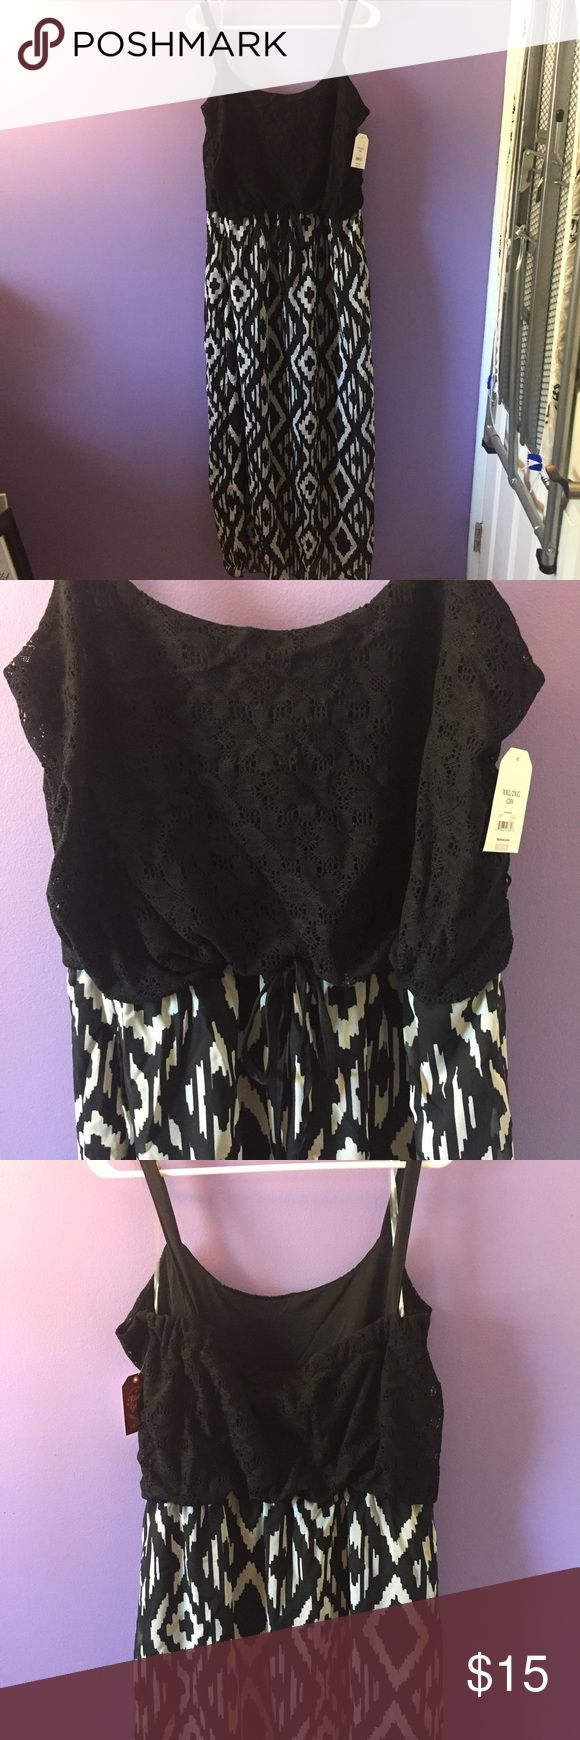 BNWT Aztec Maxi dress Black crochet look top and flowy bottom with solid layer underneath. Spaghetti strap. Very cute, very comfy, perfect for summer! Faded Glory Dresses Maxi